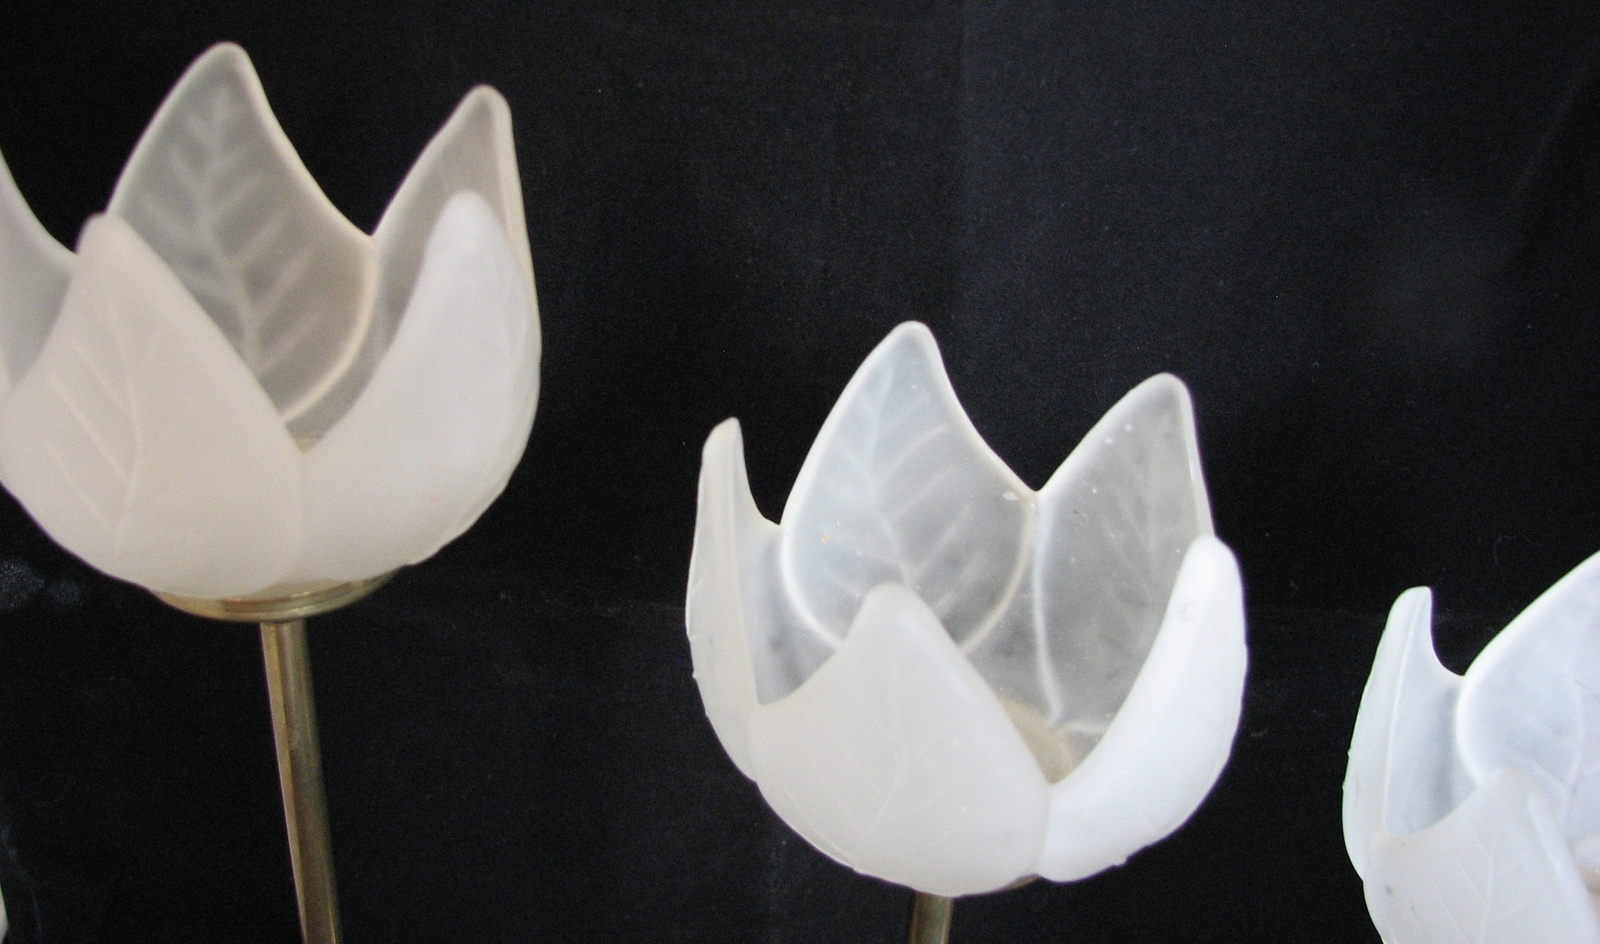 1970s Candleholders Brass Tulips Frosted Glass White Set of 3